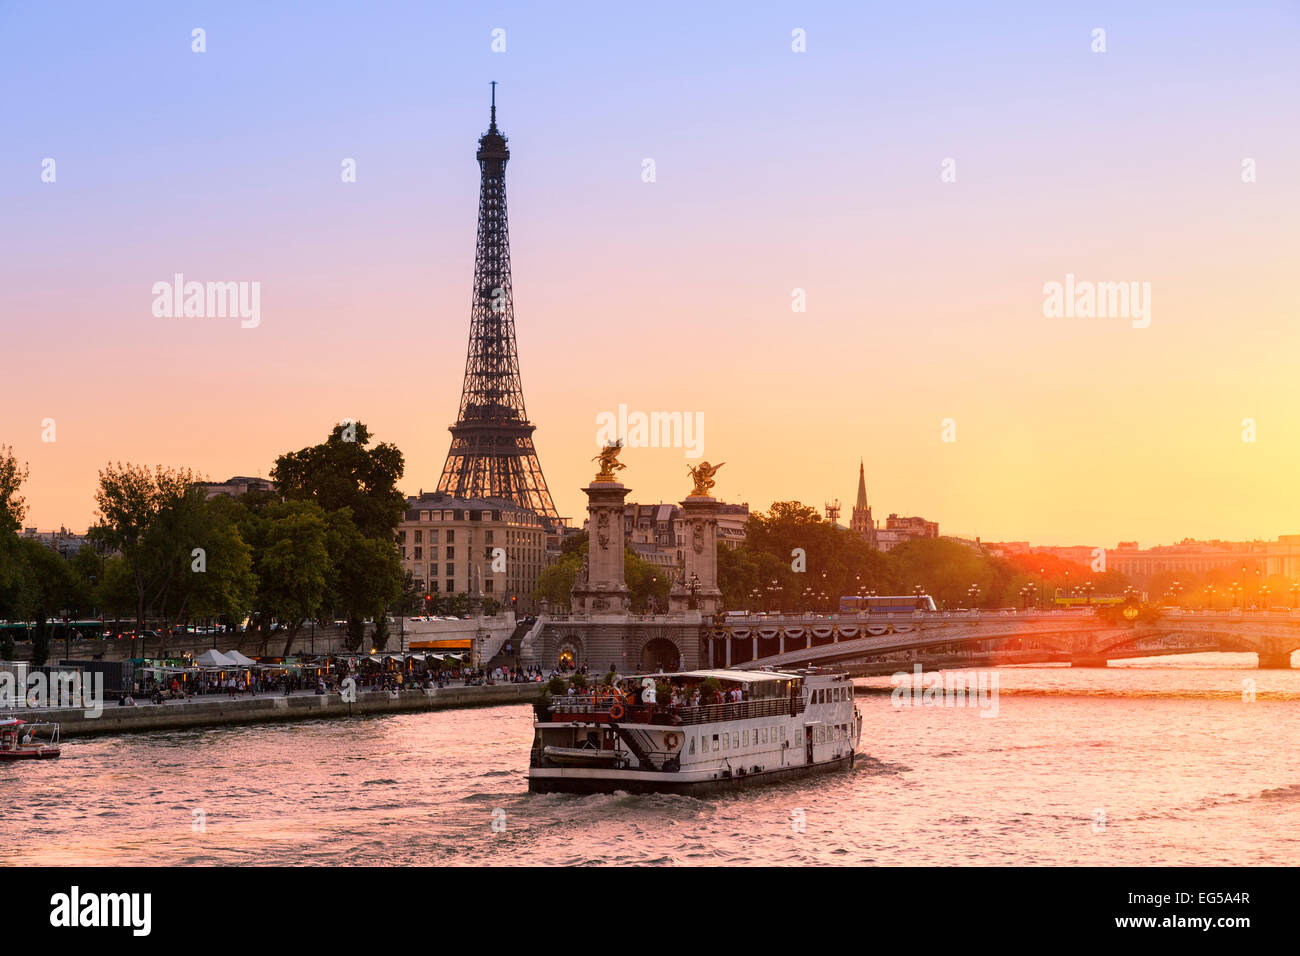 Paris, Tour boat on the Seine river at Sunset - Stock Image